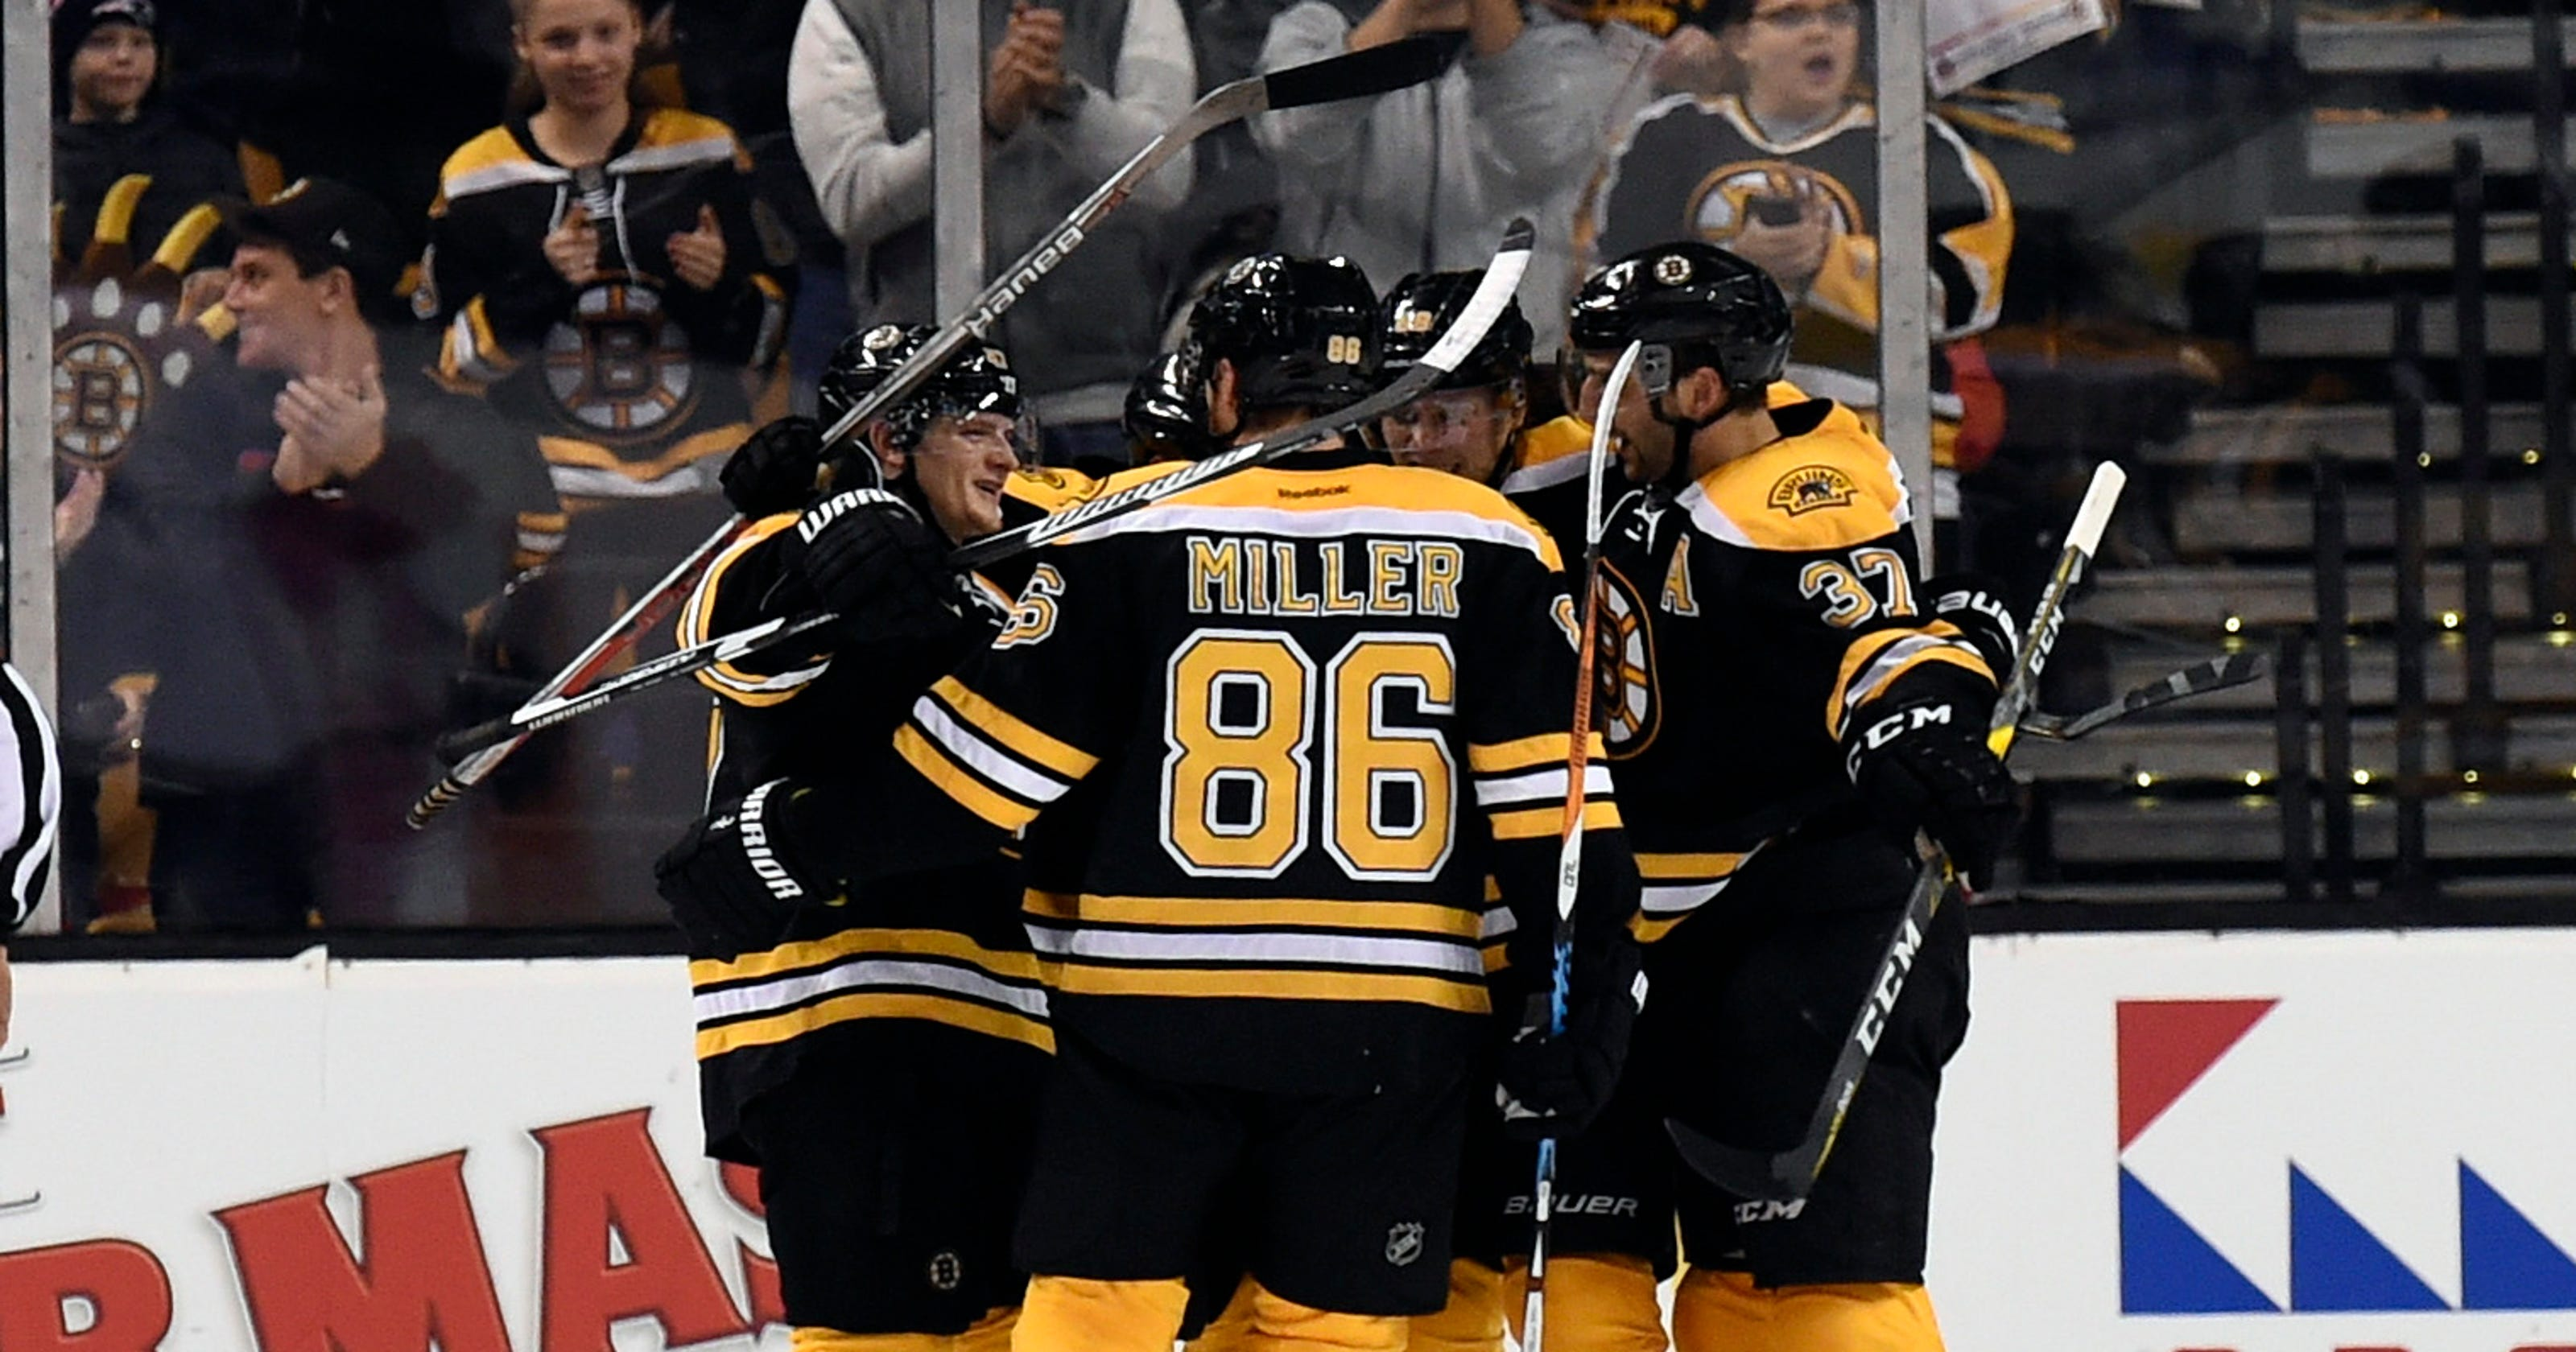 0fb2e2a3c6fa6 David Pastrnak s goal gives Bruins 4-3 OT win over Panthers